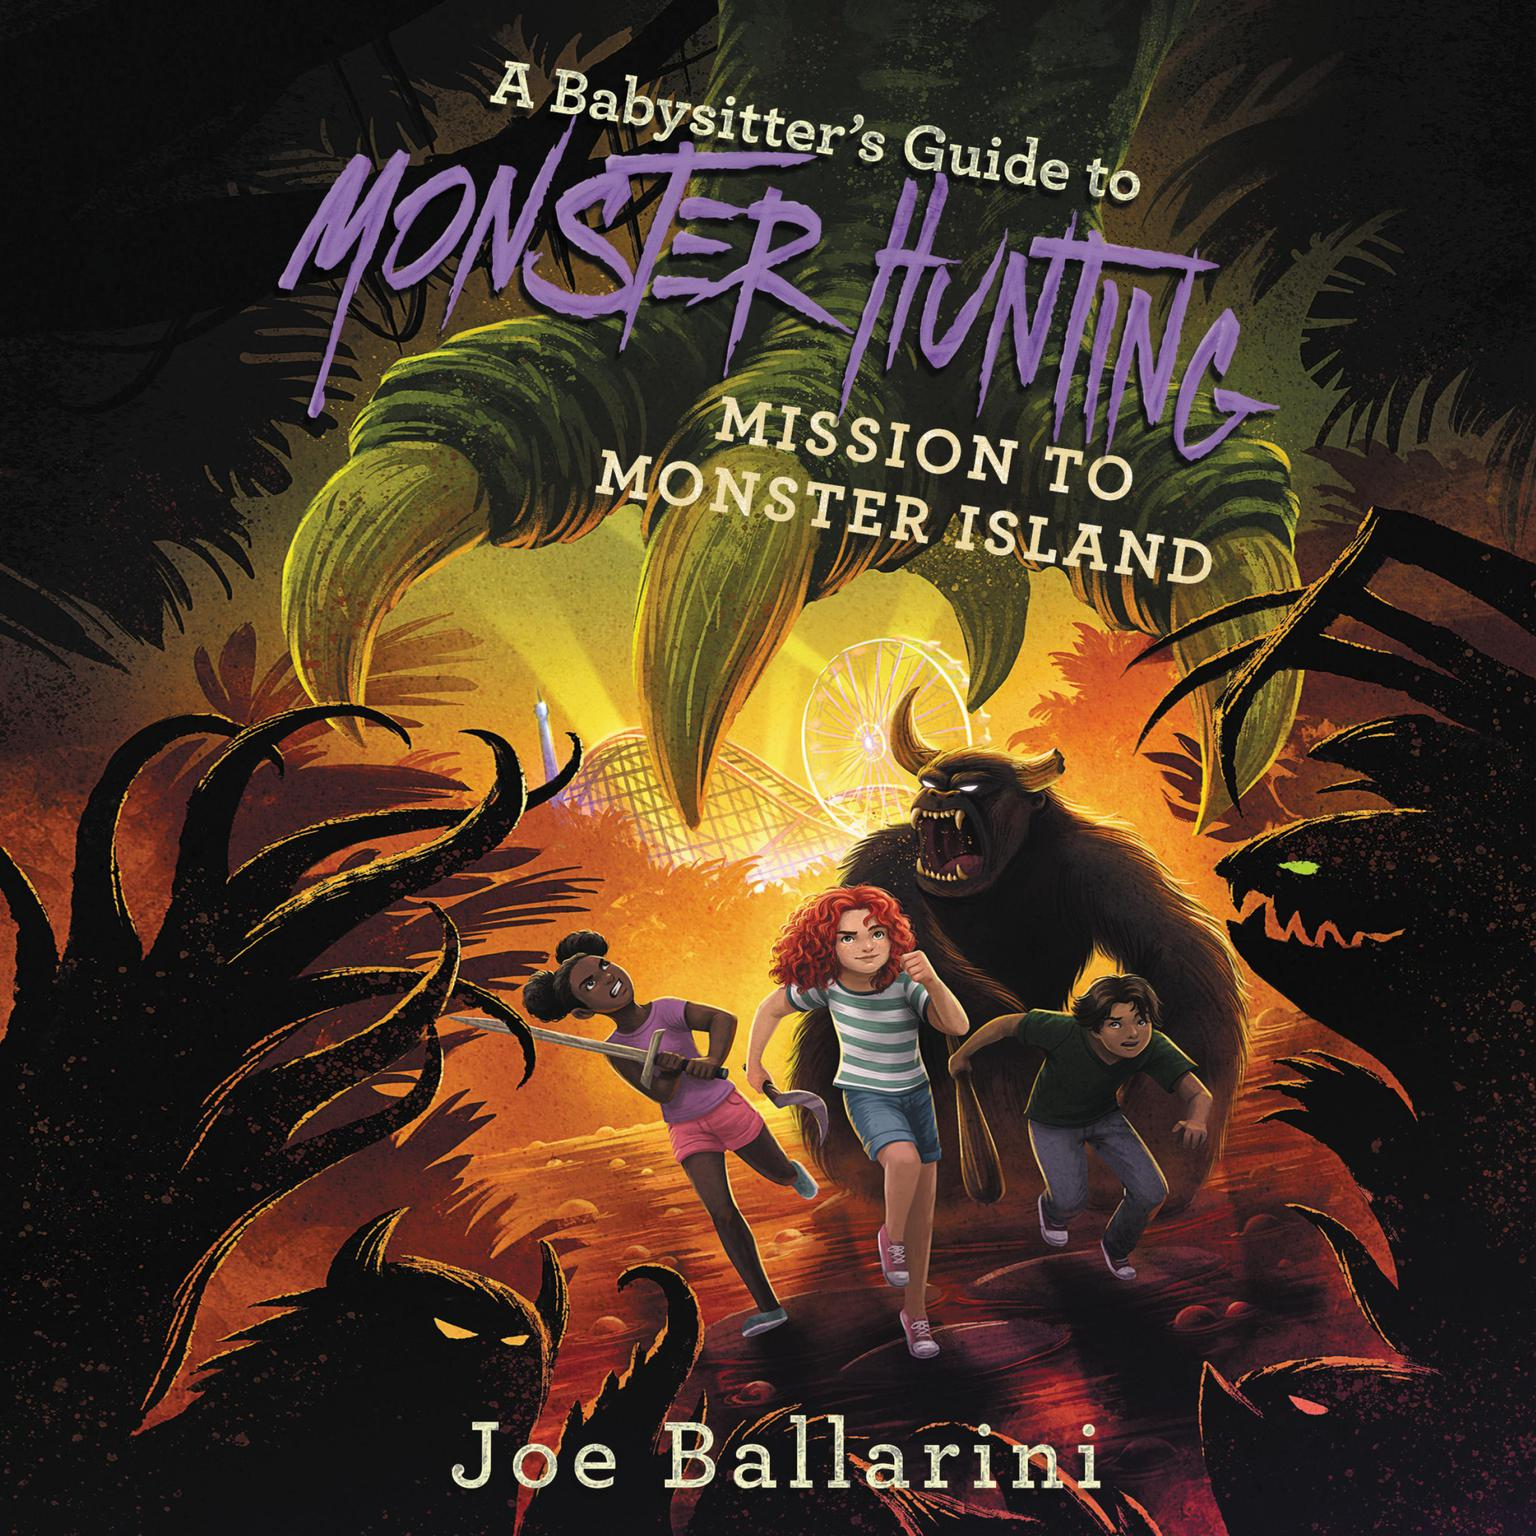 Printable A Babysitter's Guide to Monster Hunting #3: Mission to Monster Island Audiobook Cover Art